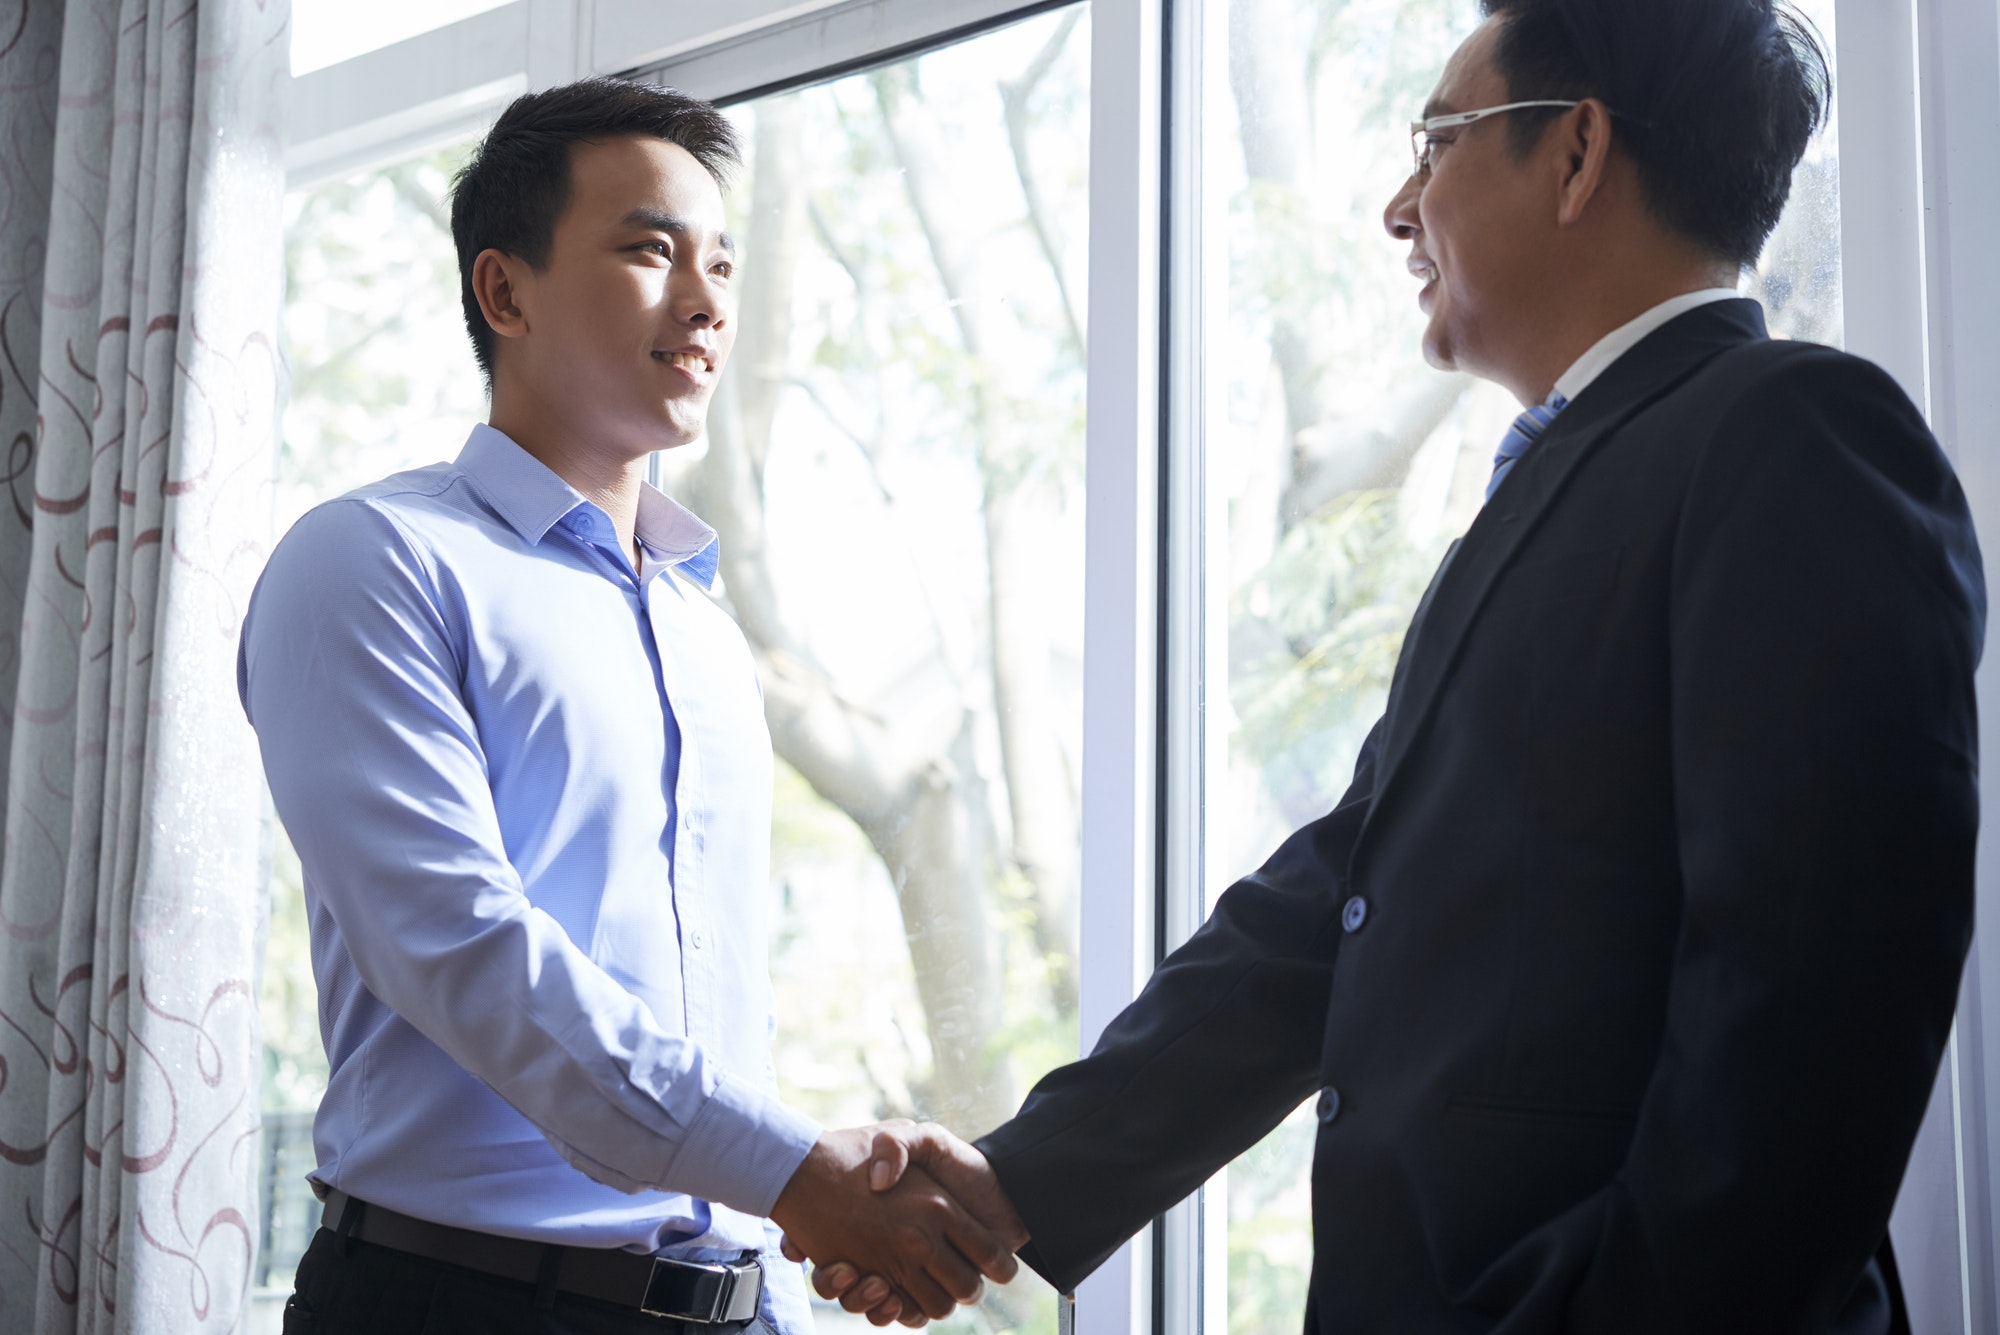 Businessman shaking hand of colleague